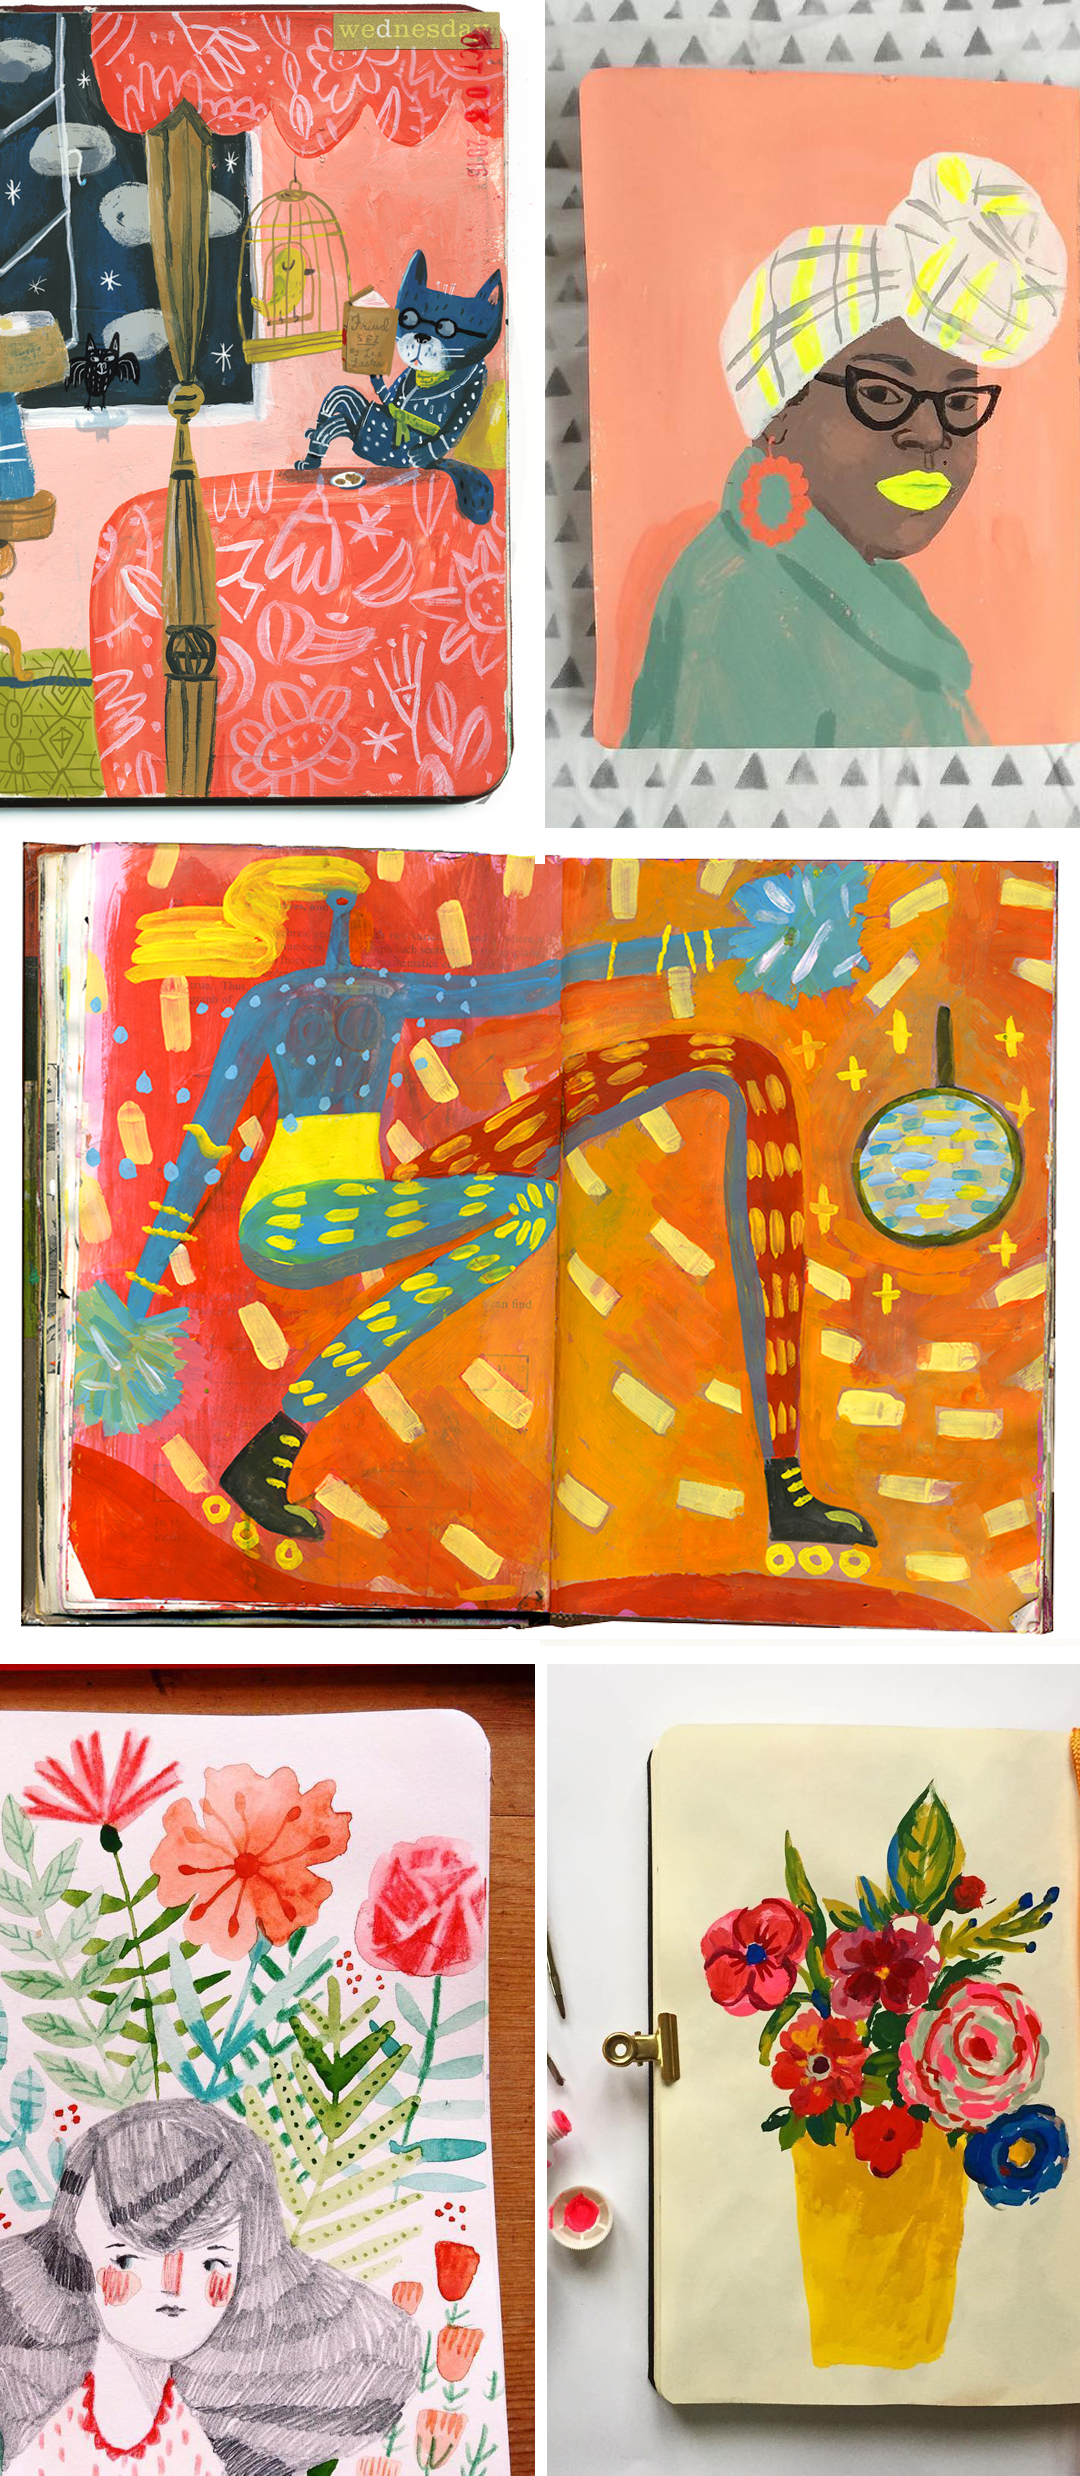 Illustrated sketchbooks